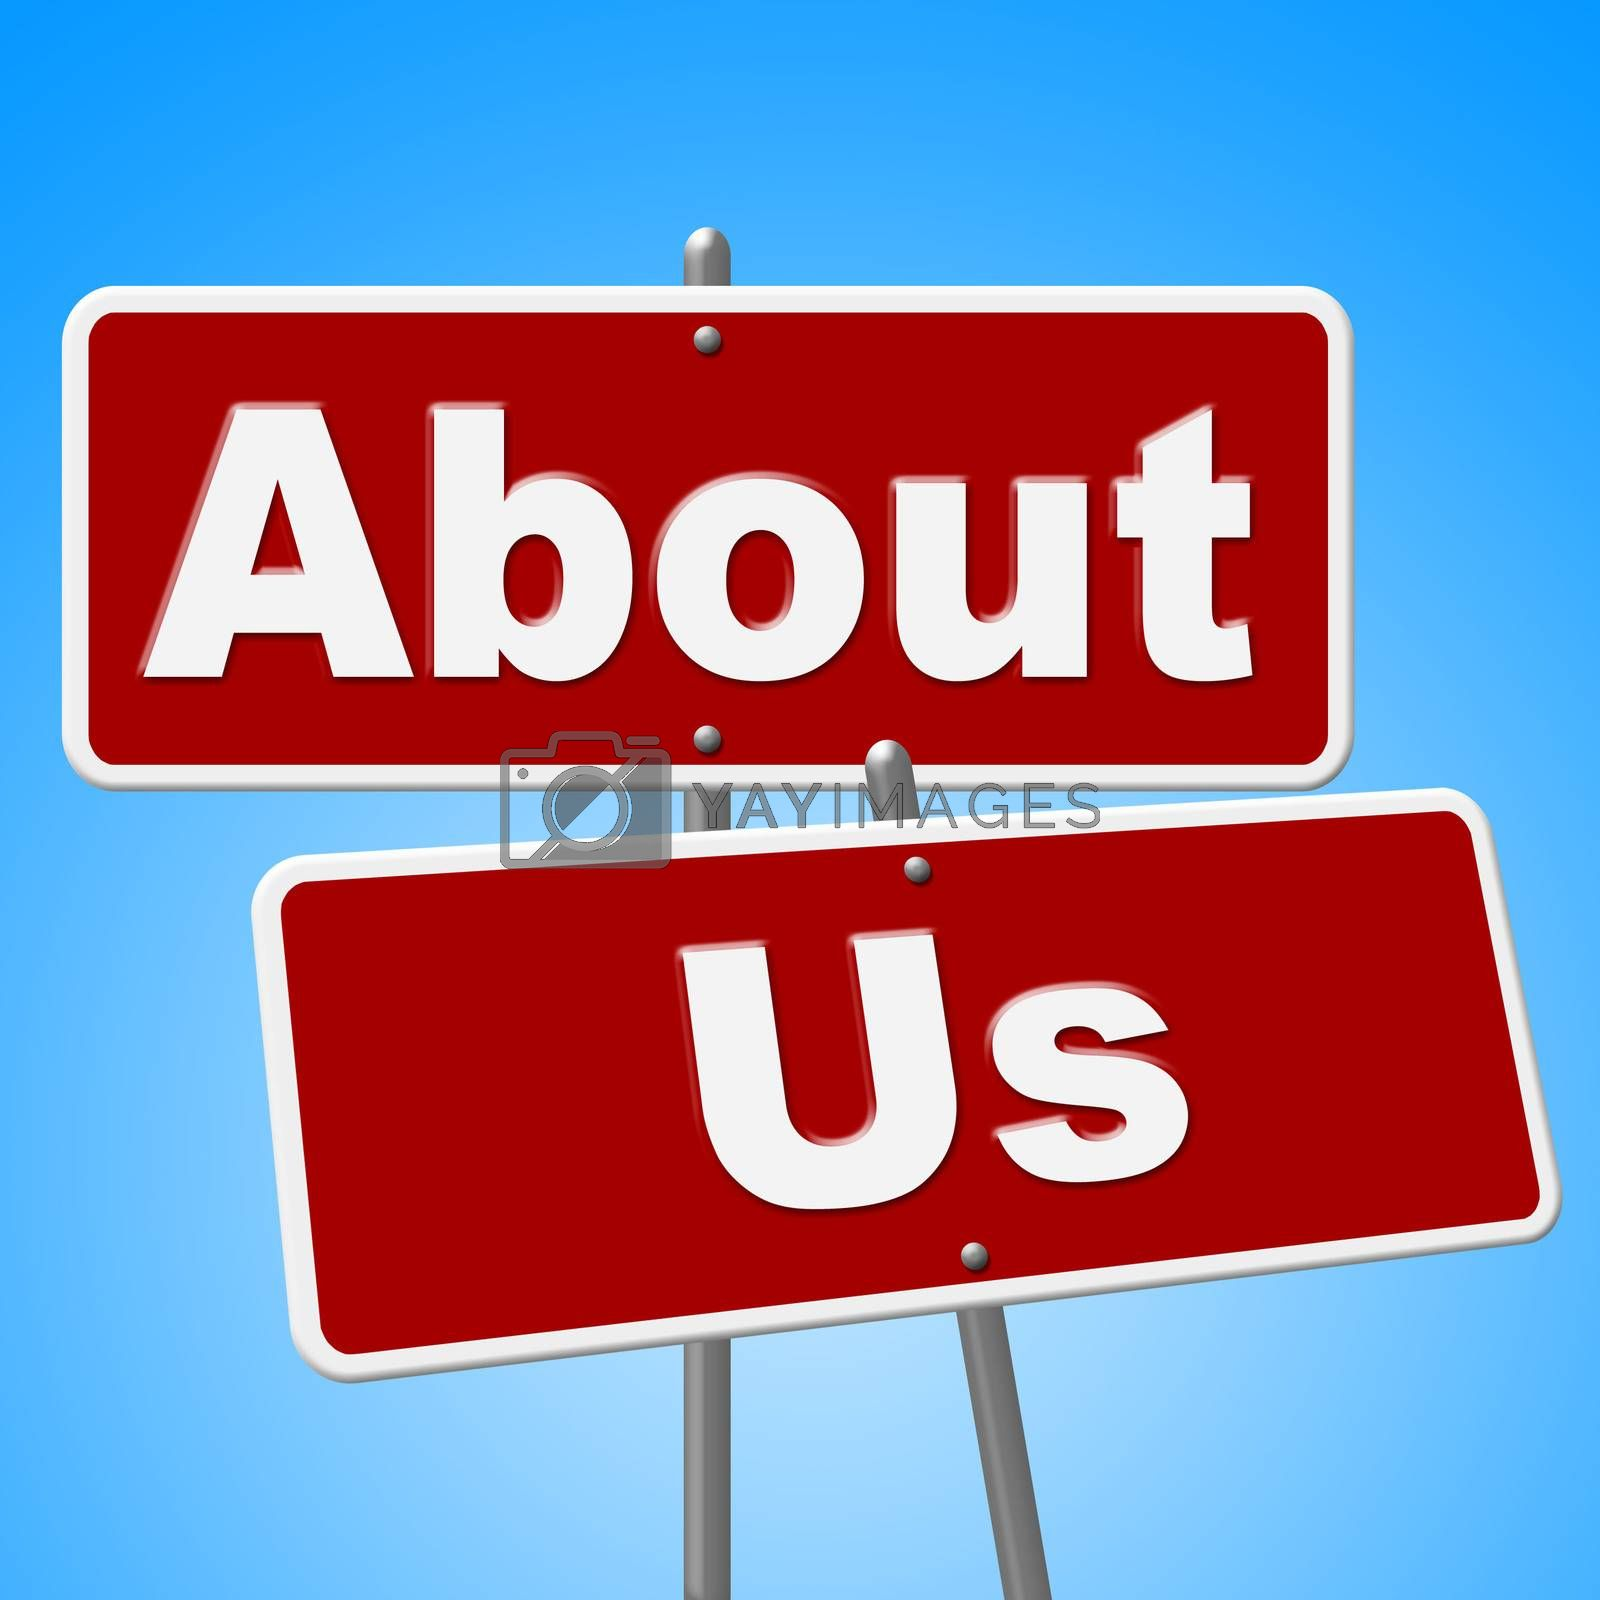 About Us Signs Represents Corporate Contact And Website by stuartmiles